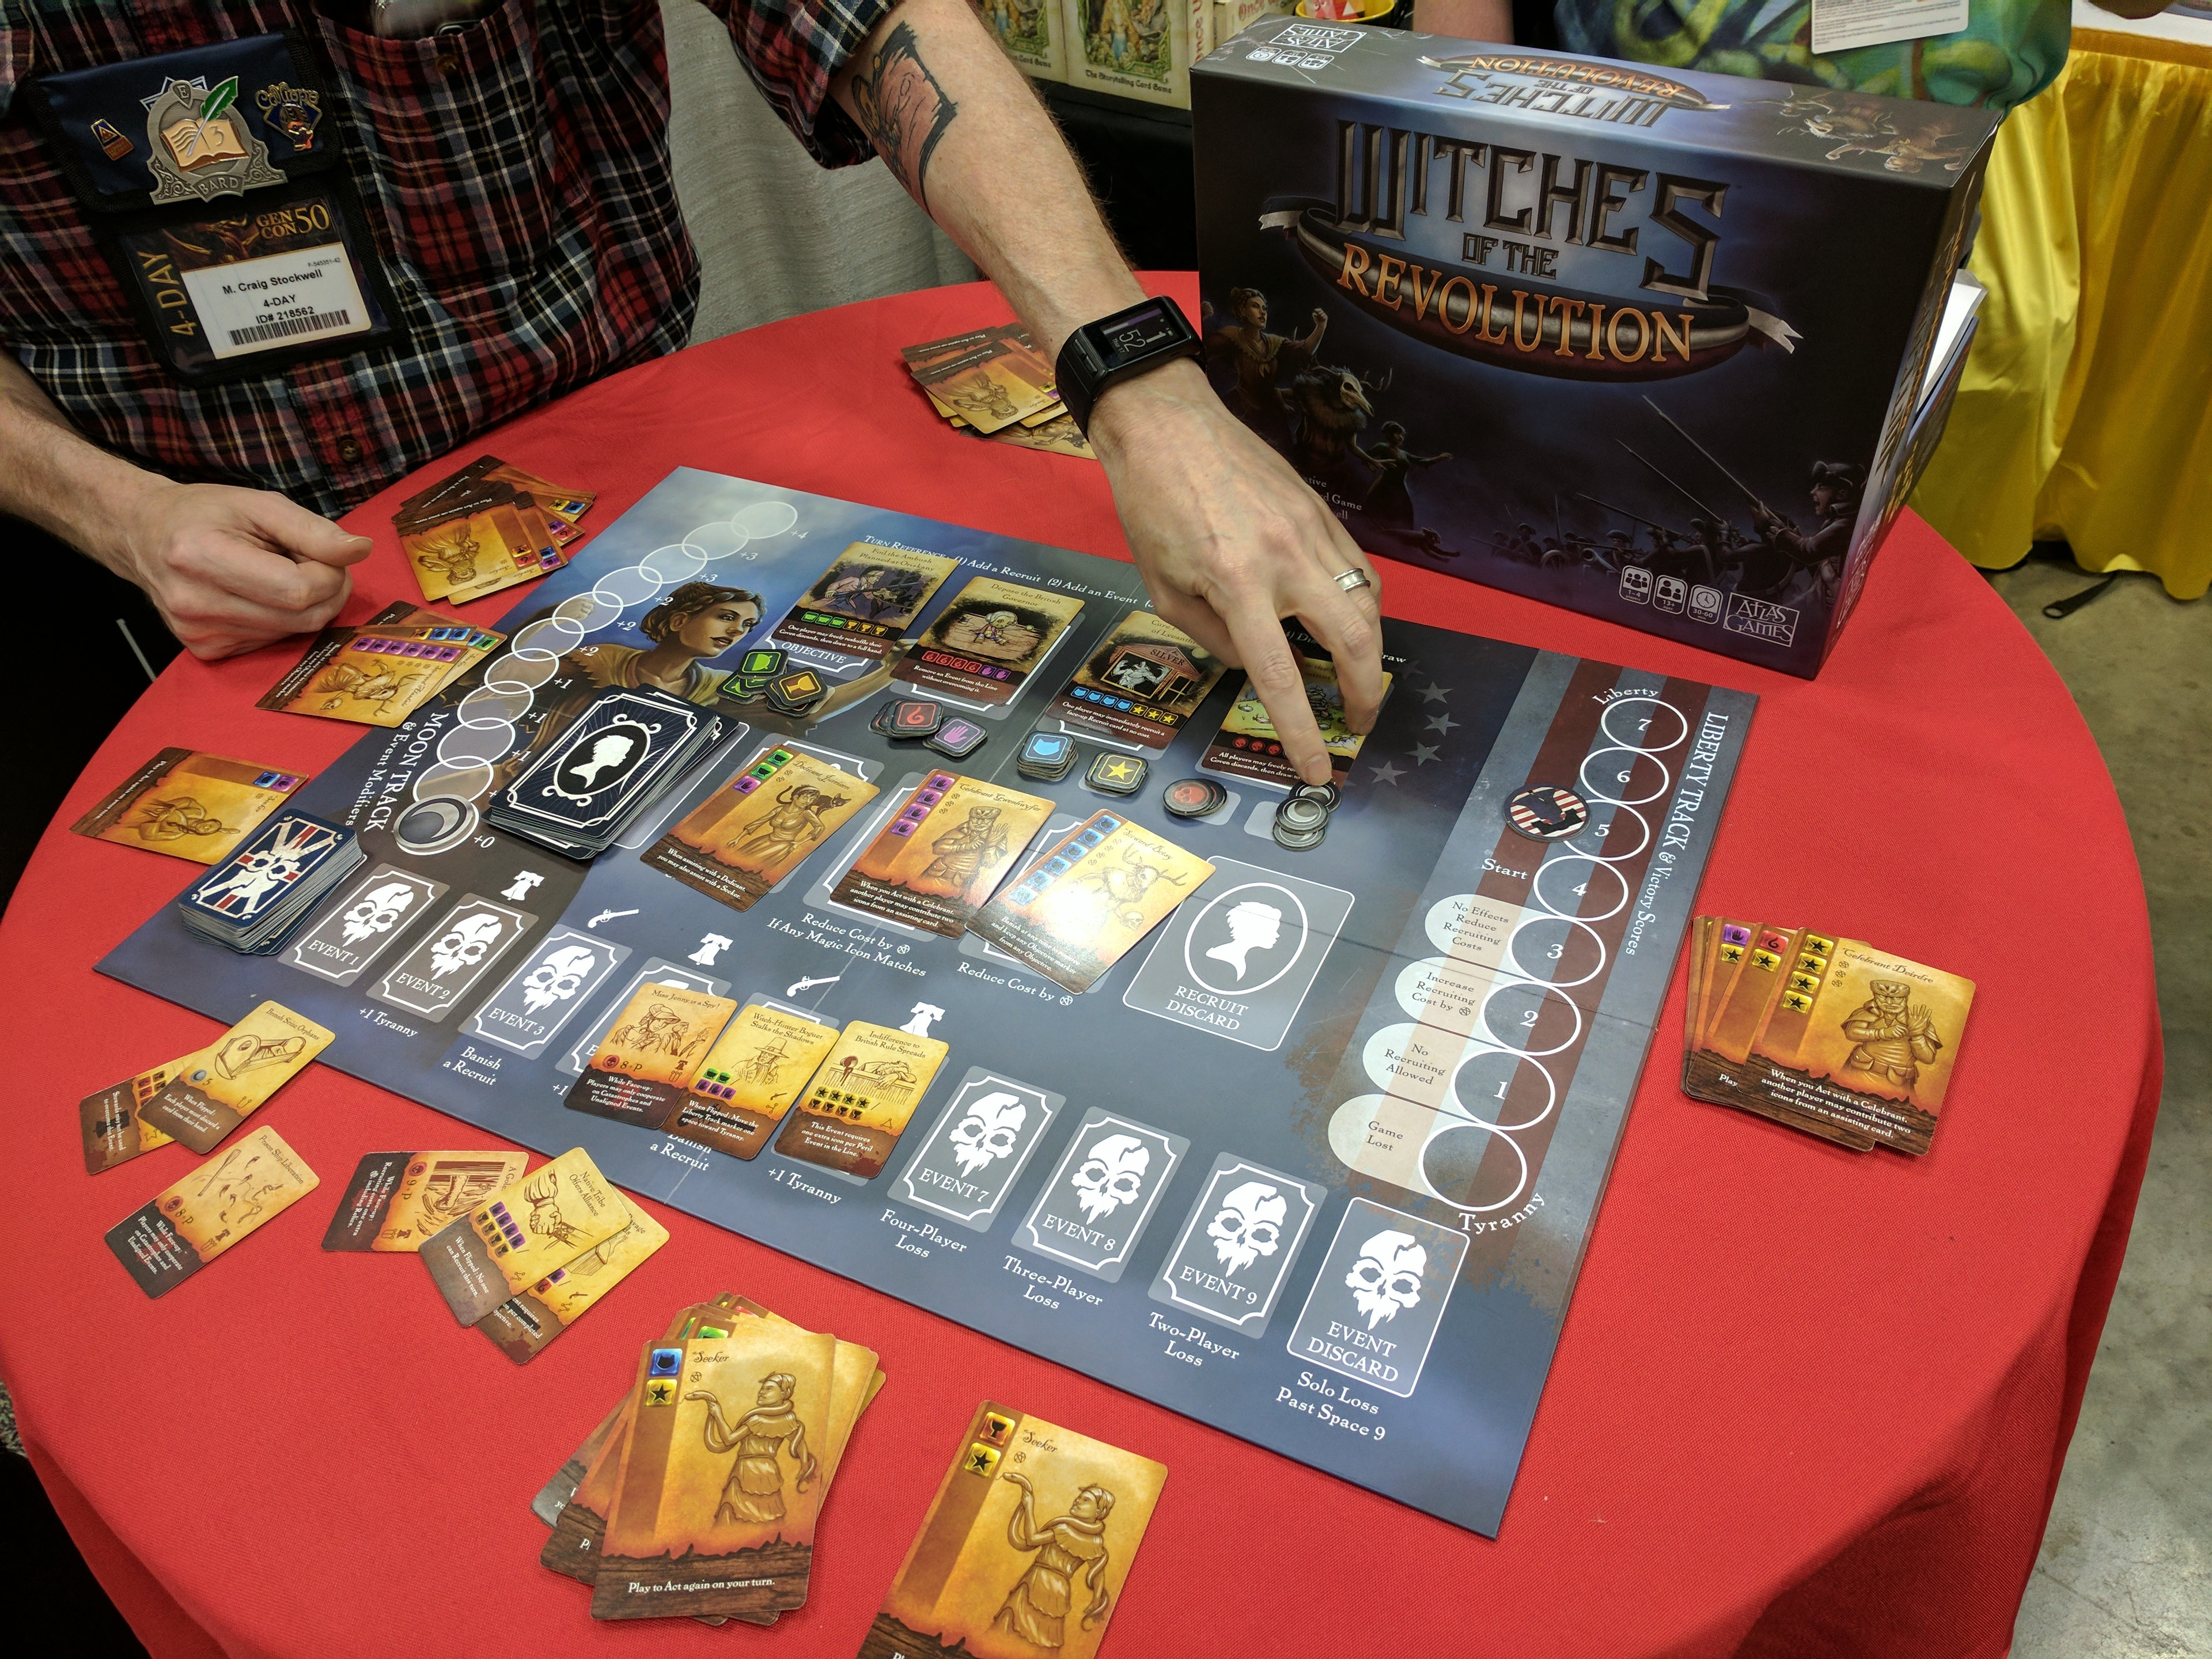 Craig Stockwell (the game designer) demoing the game at Gen Con 2017.